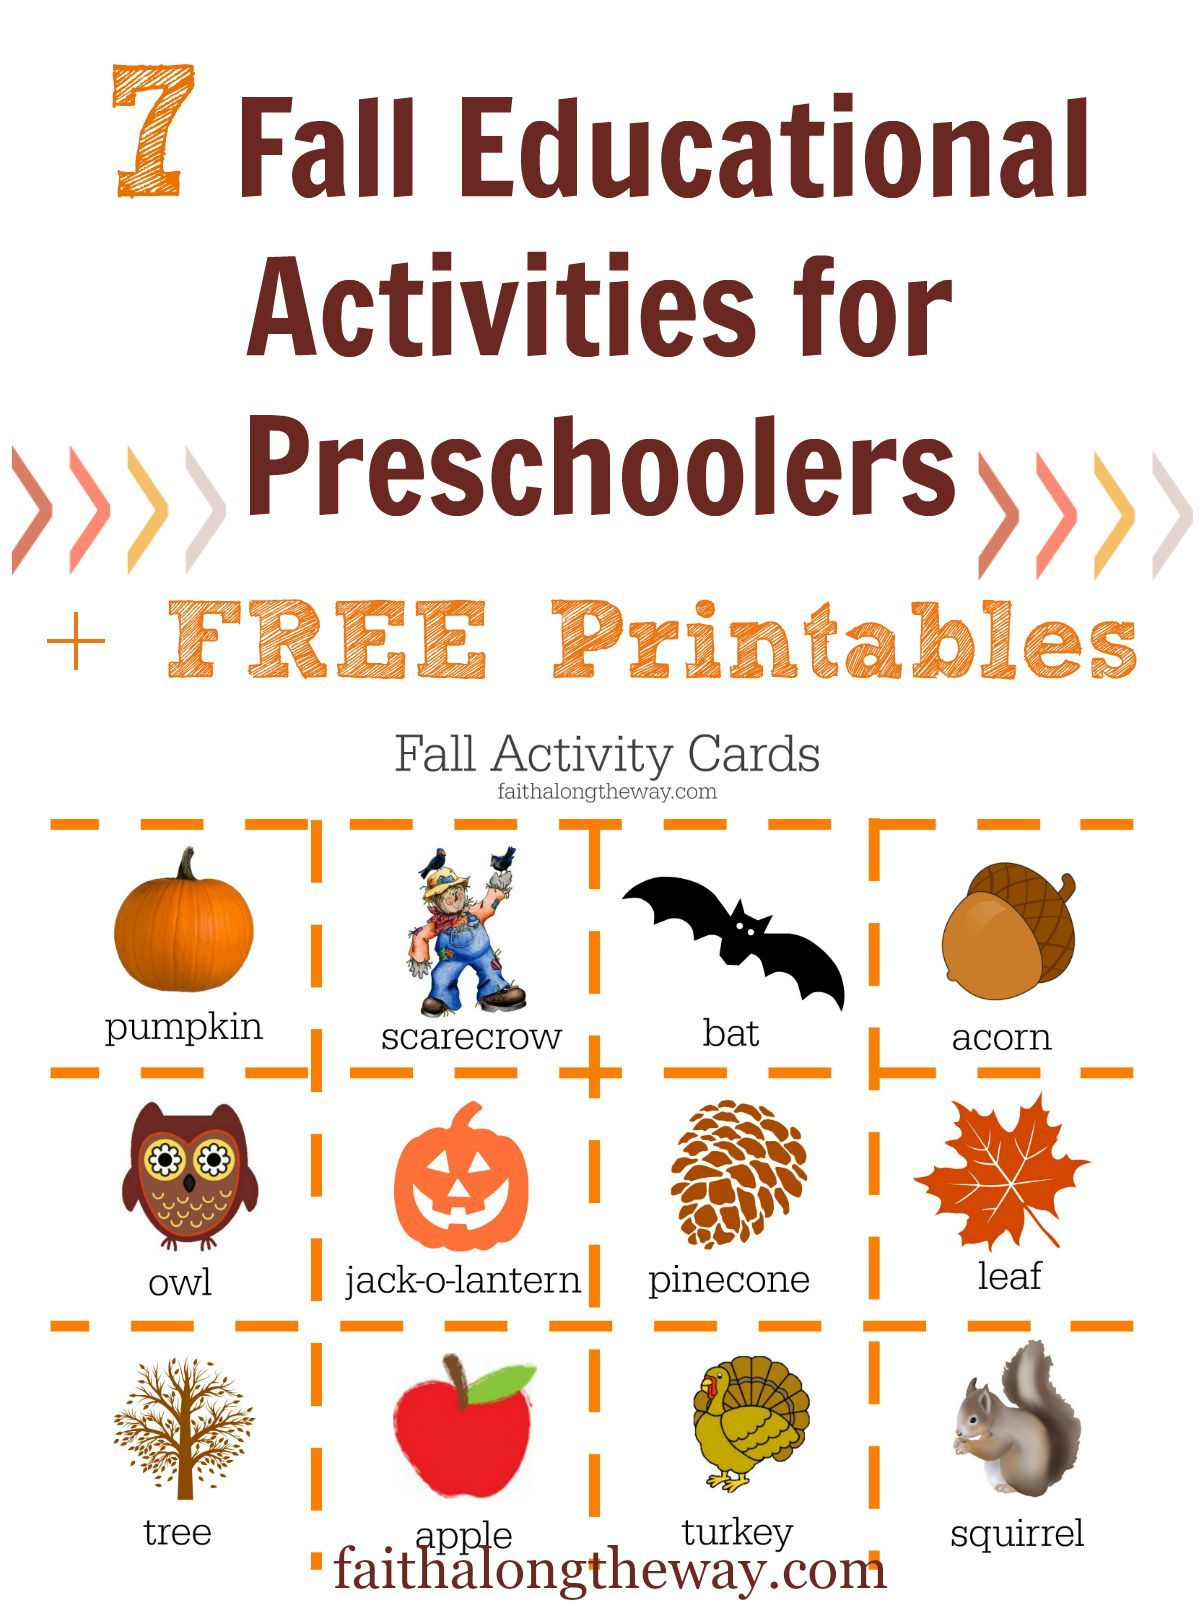 7 Fall Educational Activities For Preschoolers